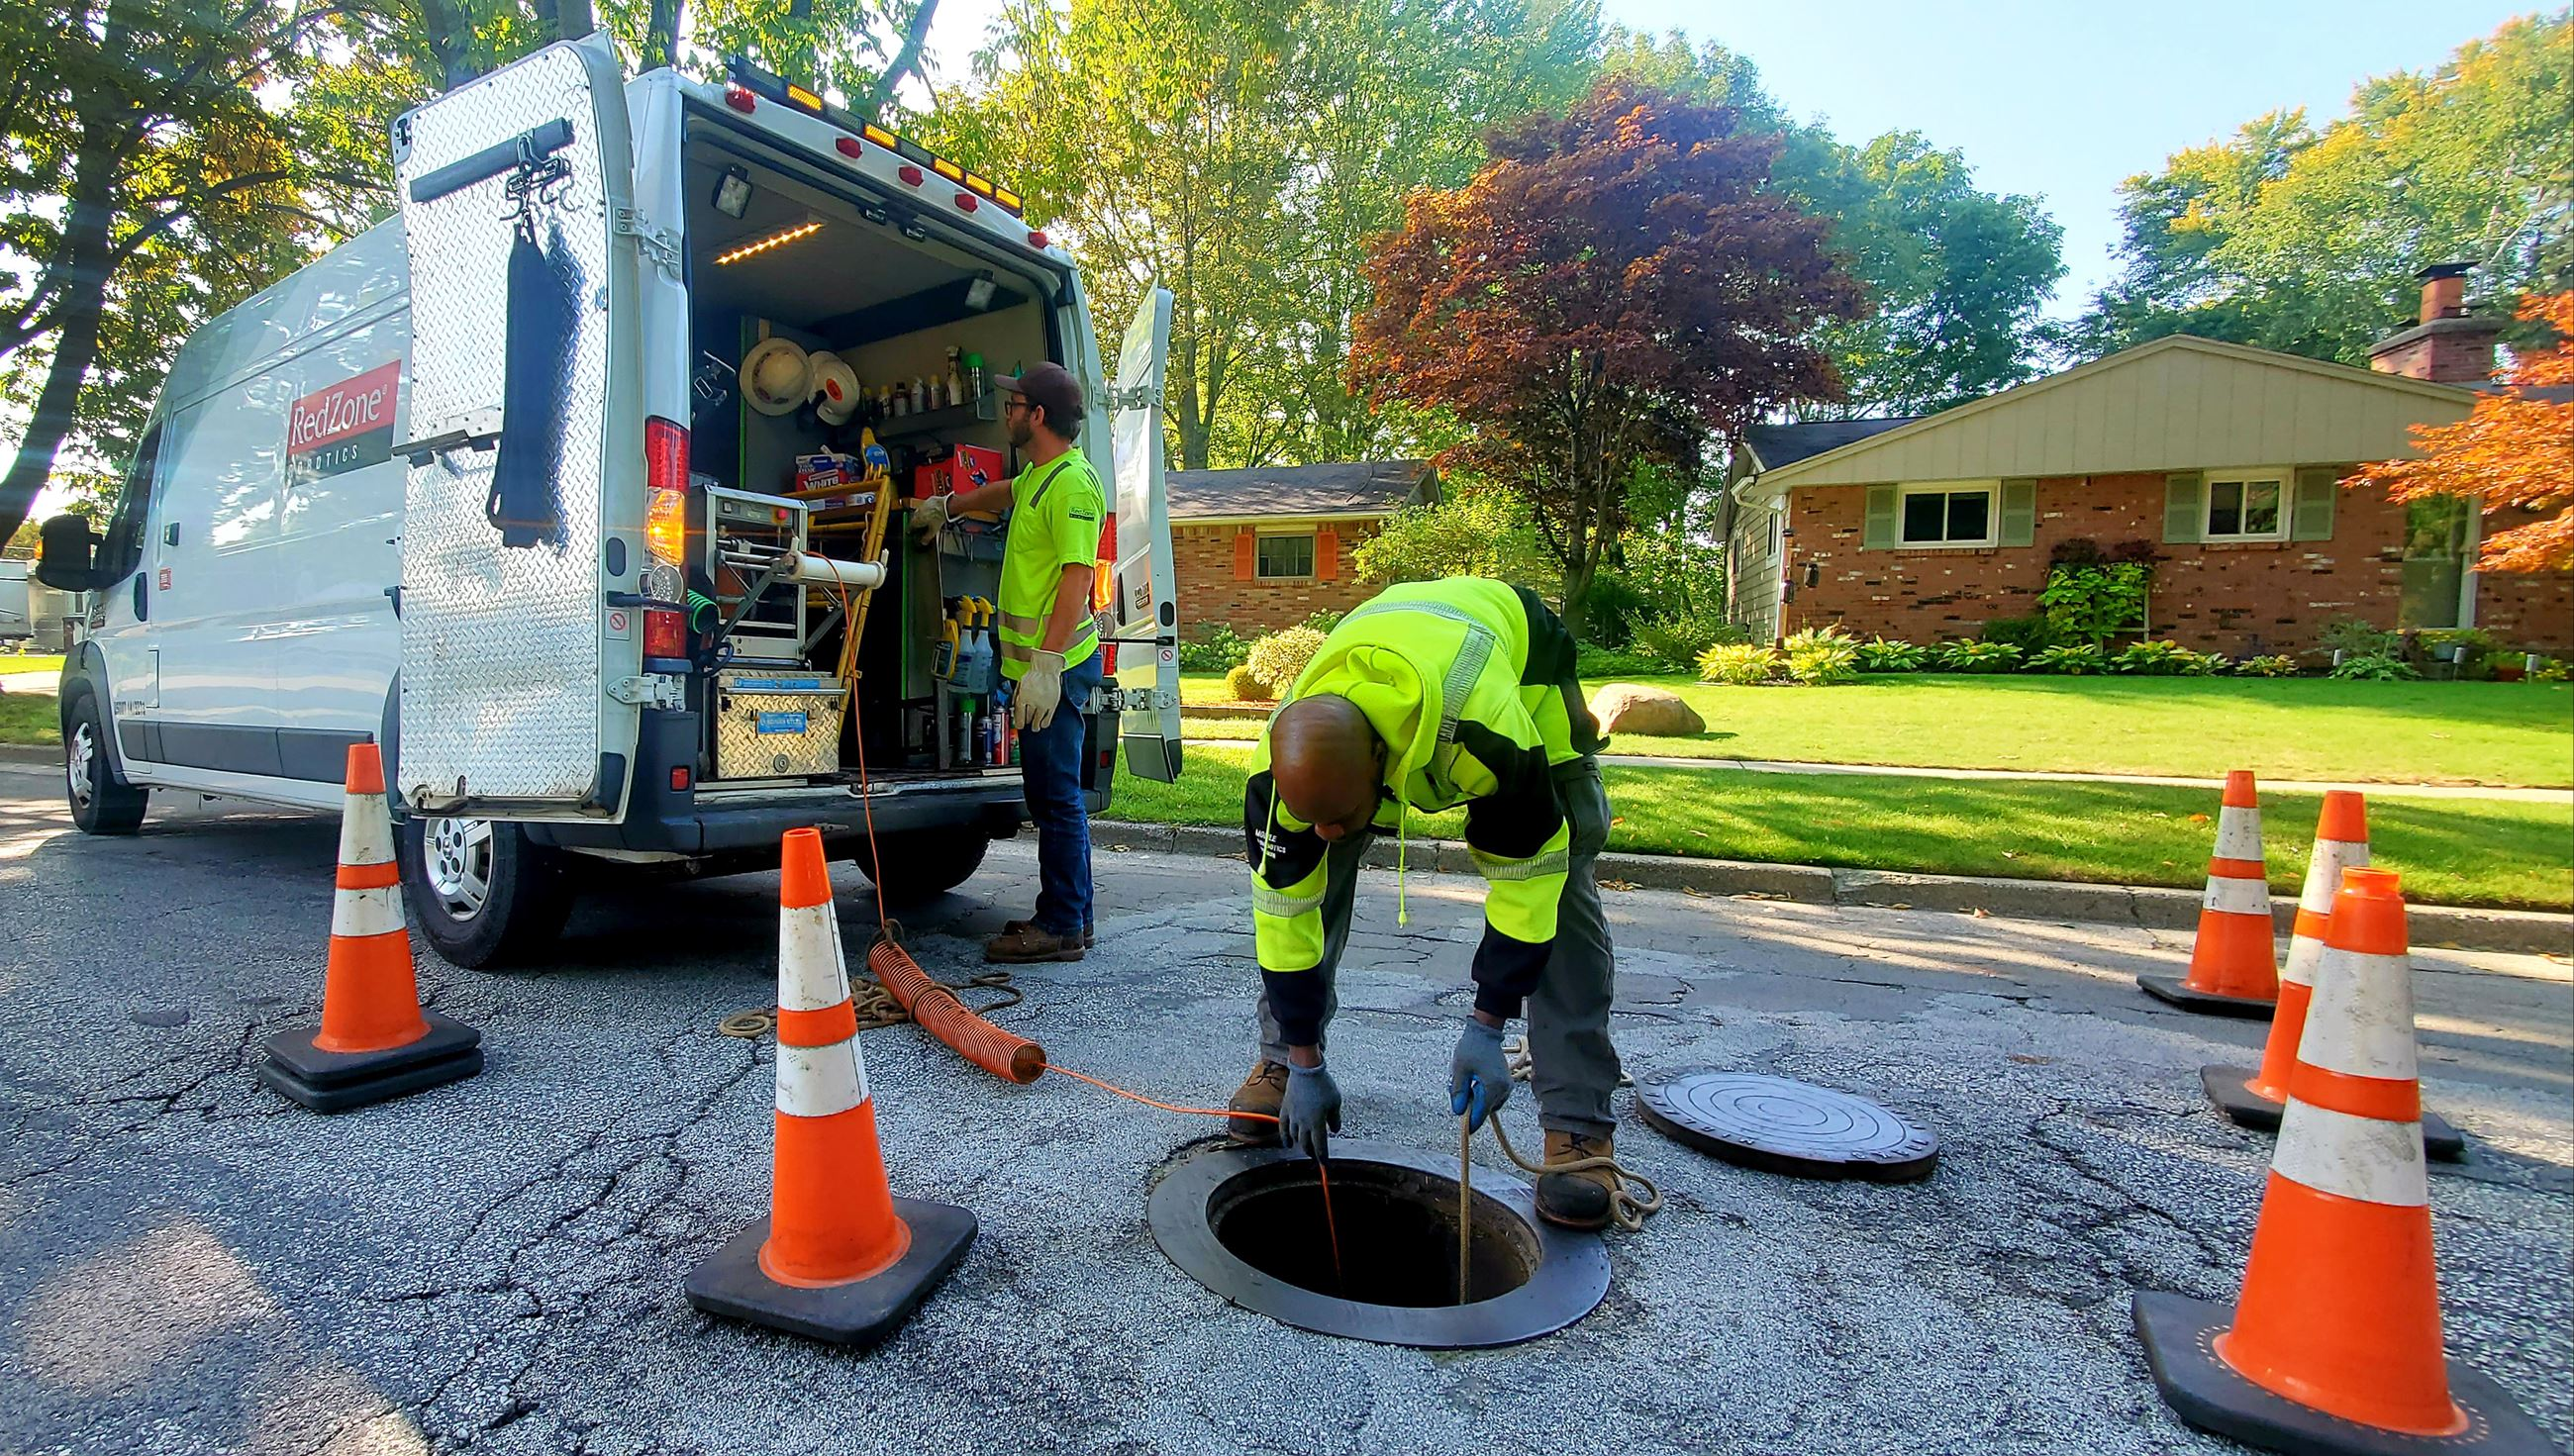 An African American man in a yellow jacket looks into a sewer manhole with a white van